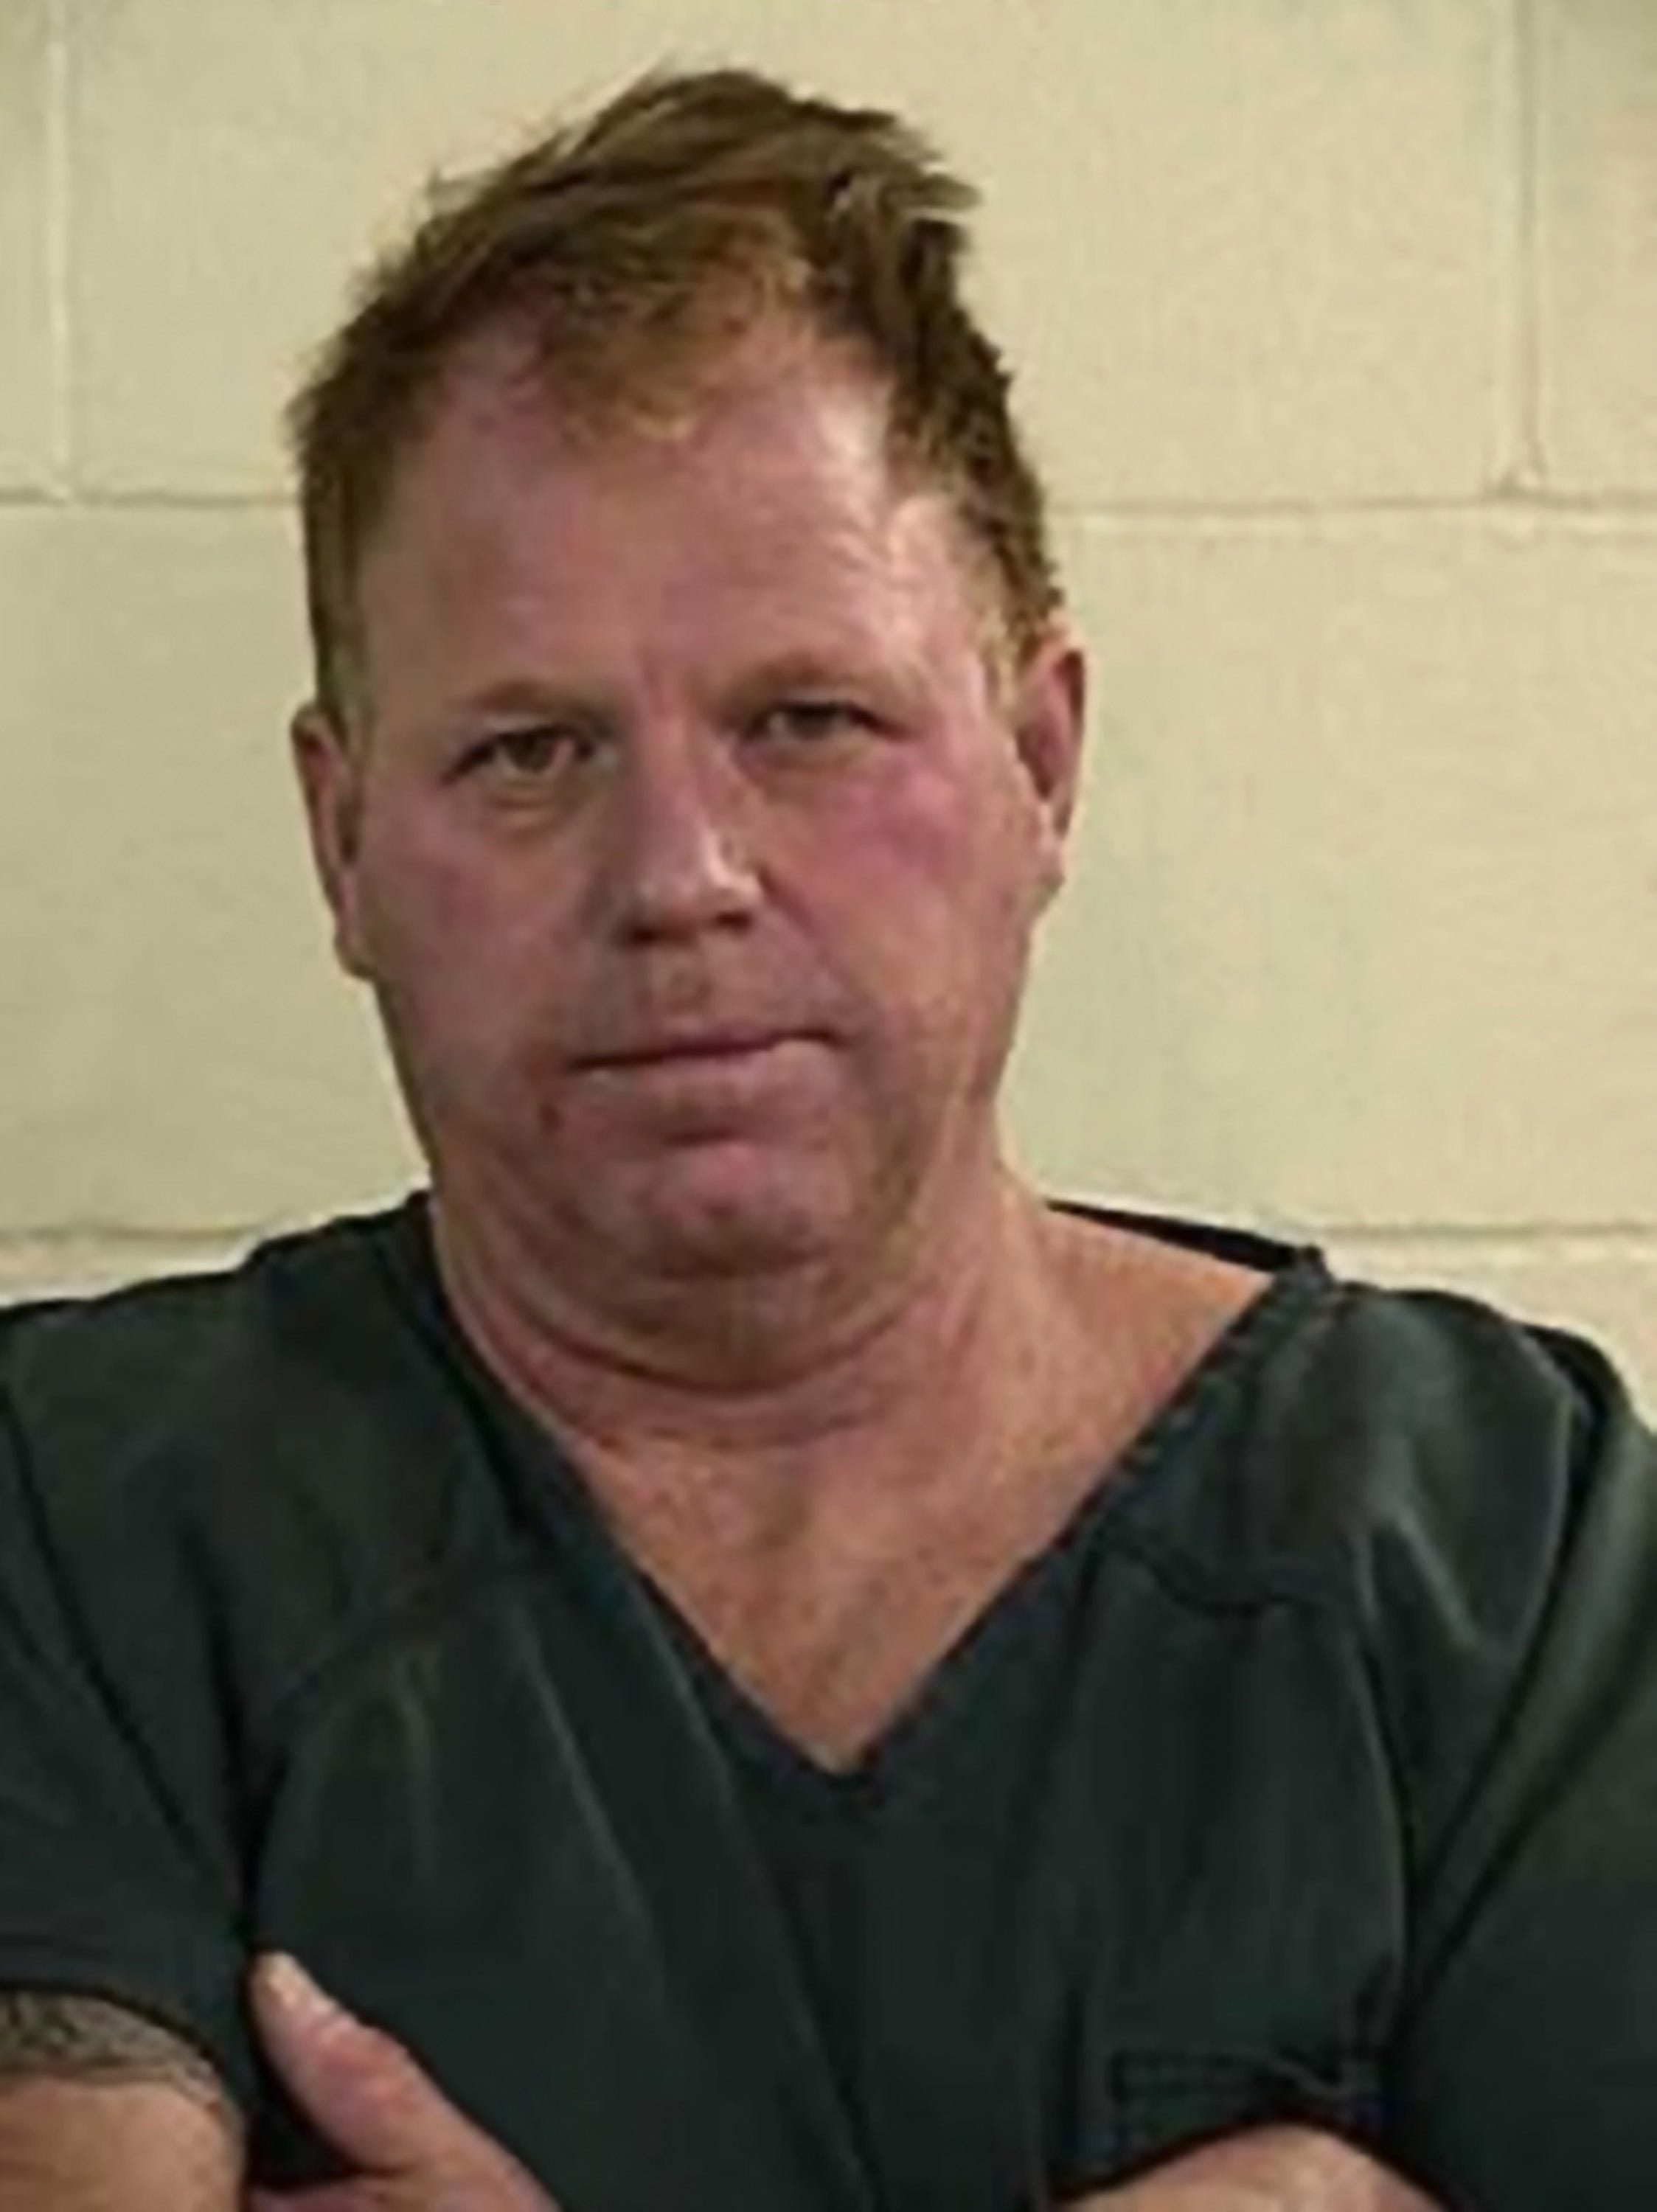 Duchess Meghan's estranged half brother Thomas Markle Jr. arrested on DUI charge